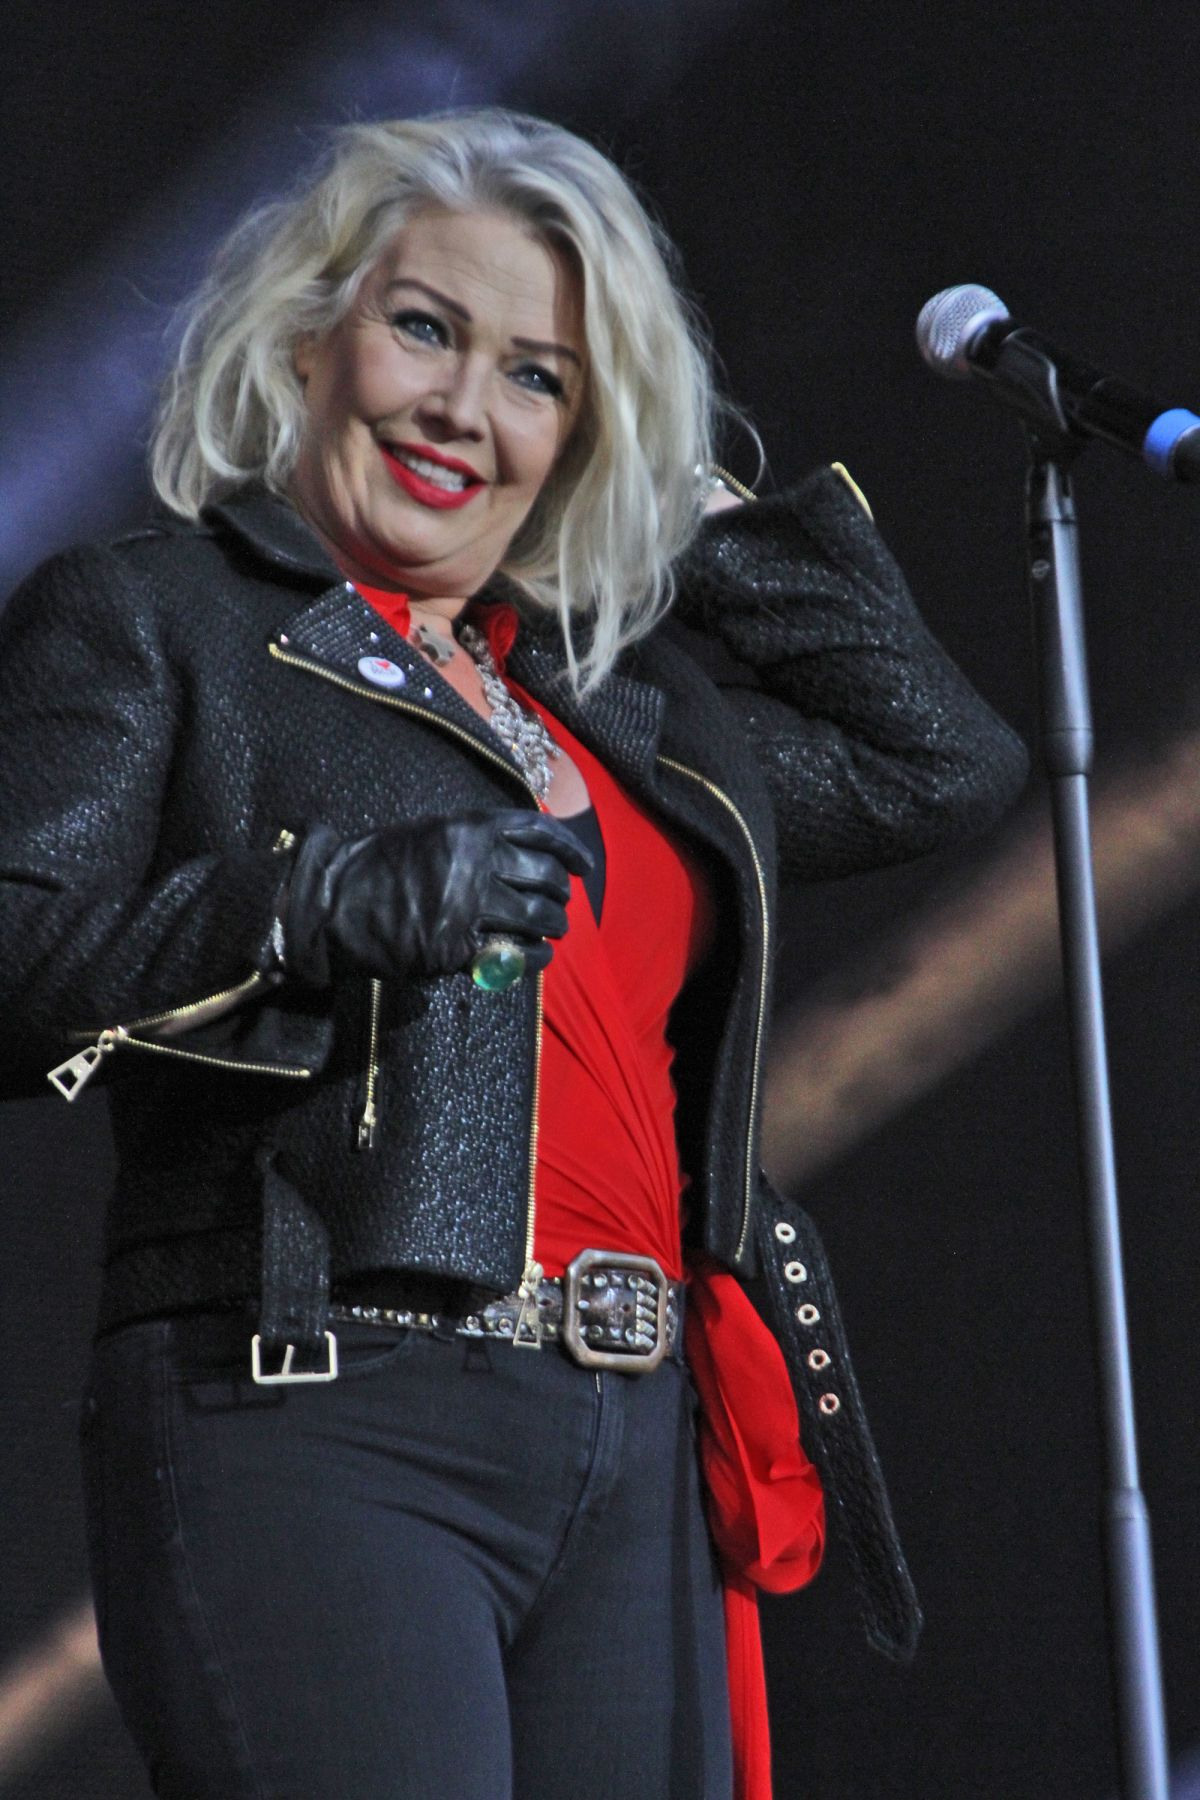 kim wilde performs at rewind north at capesthorne hall in